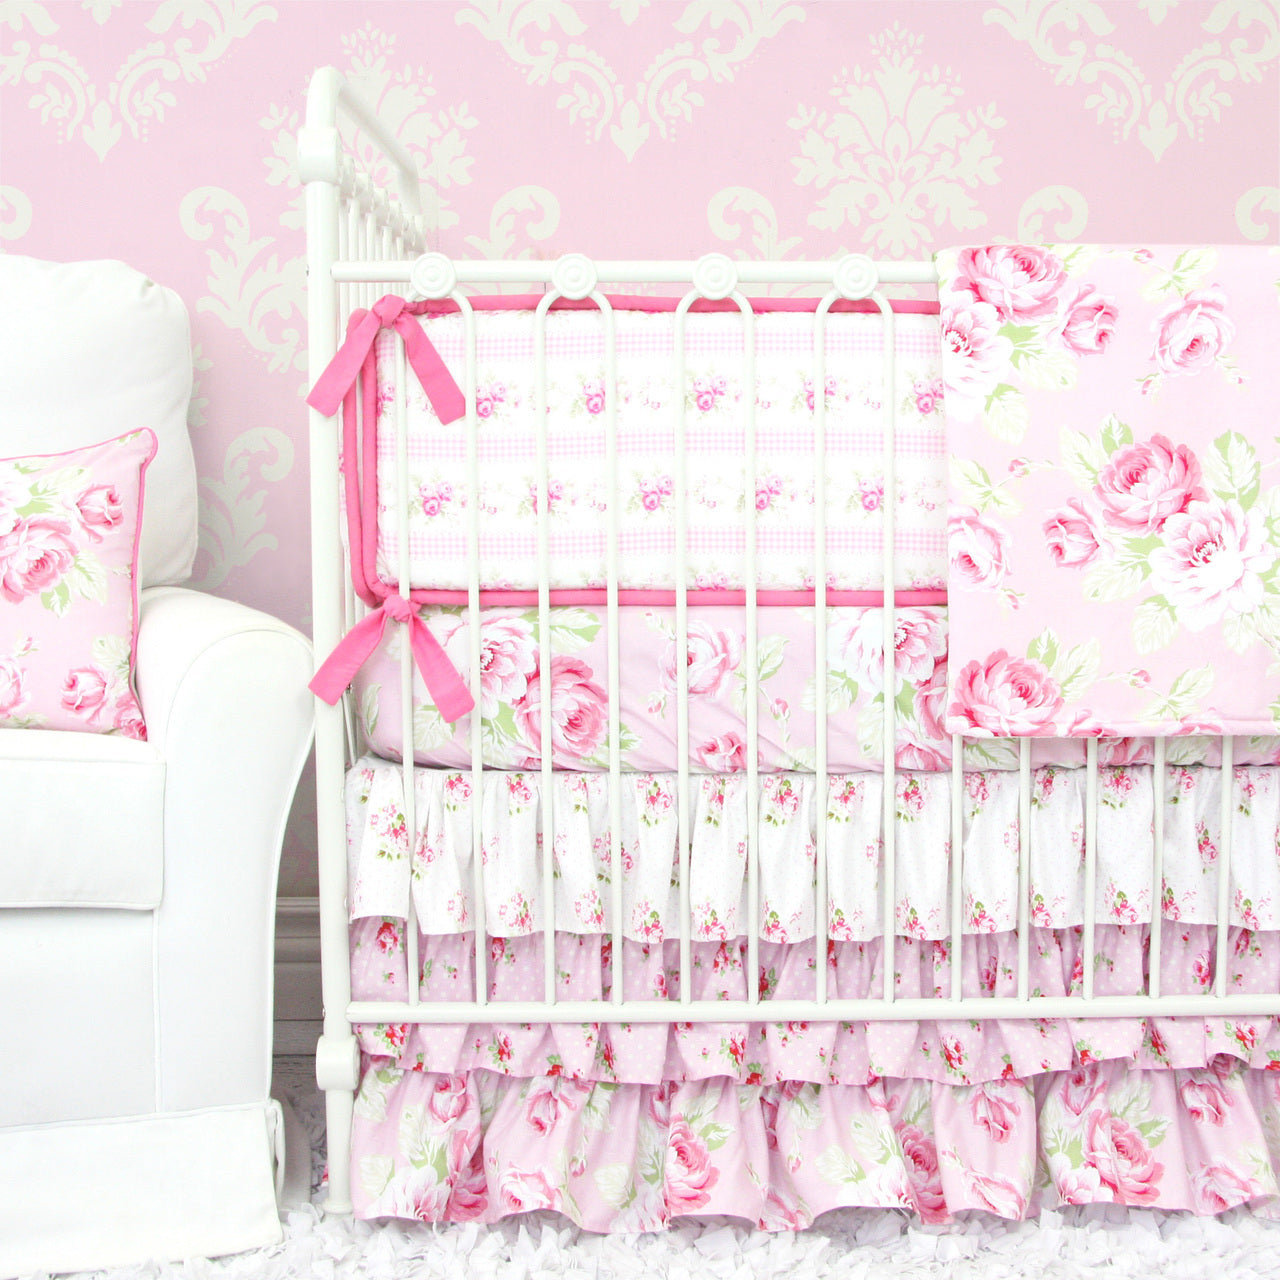 Girly Pink Nursery Decor: 3 Pink Floral Crib Bedding Sets For A Girly Nursery